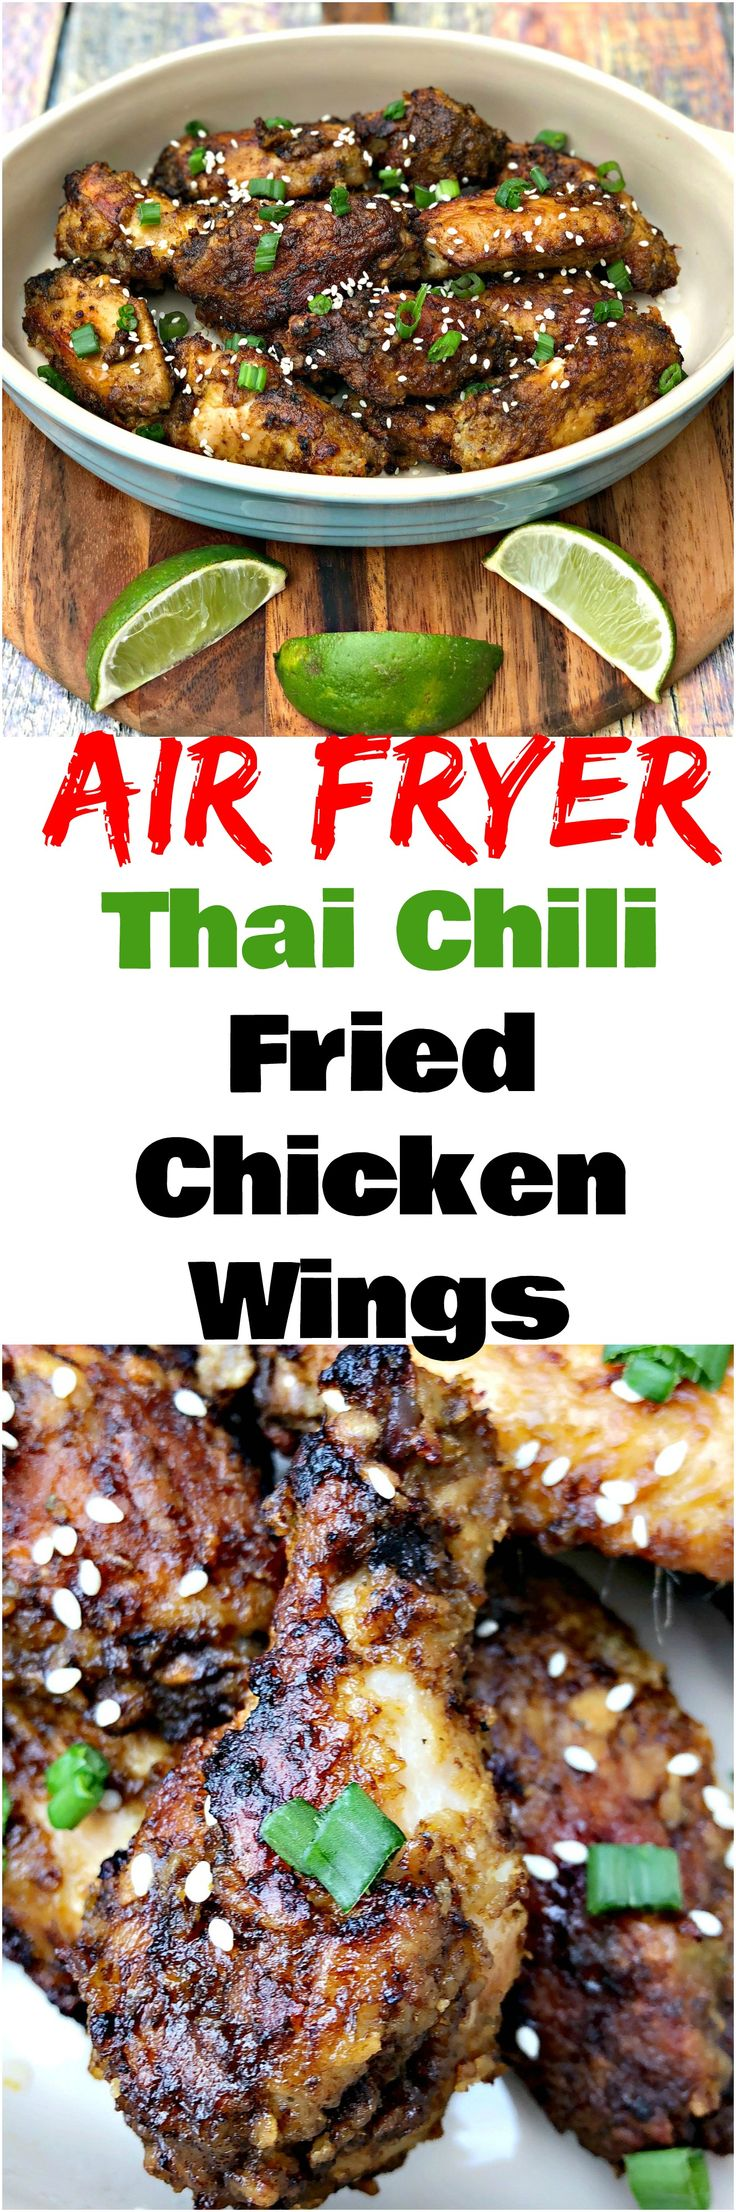 Air Fryer Thai Chili Fried Chicken Wings is a quick and easy recipe for crispy, breaded chicken with a sesame, soy sauce, and ginger glaze. Perfect appetizer recipe for game days, tailgates, Superbowl, parties, and events. #AirFryer #AirFryerRecipes #ChickenWings #GameDay #Appetizers #SuperbowlAppetizers